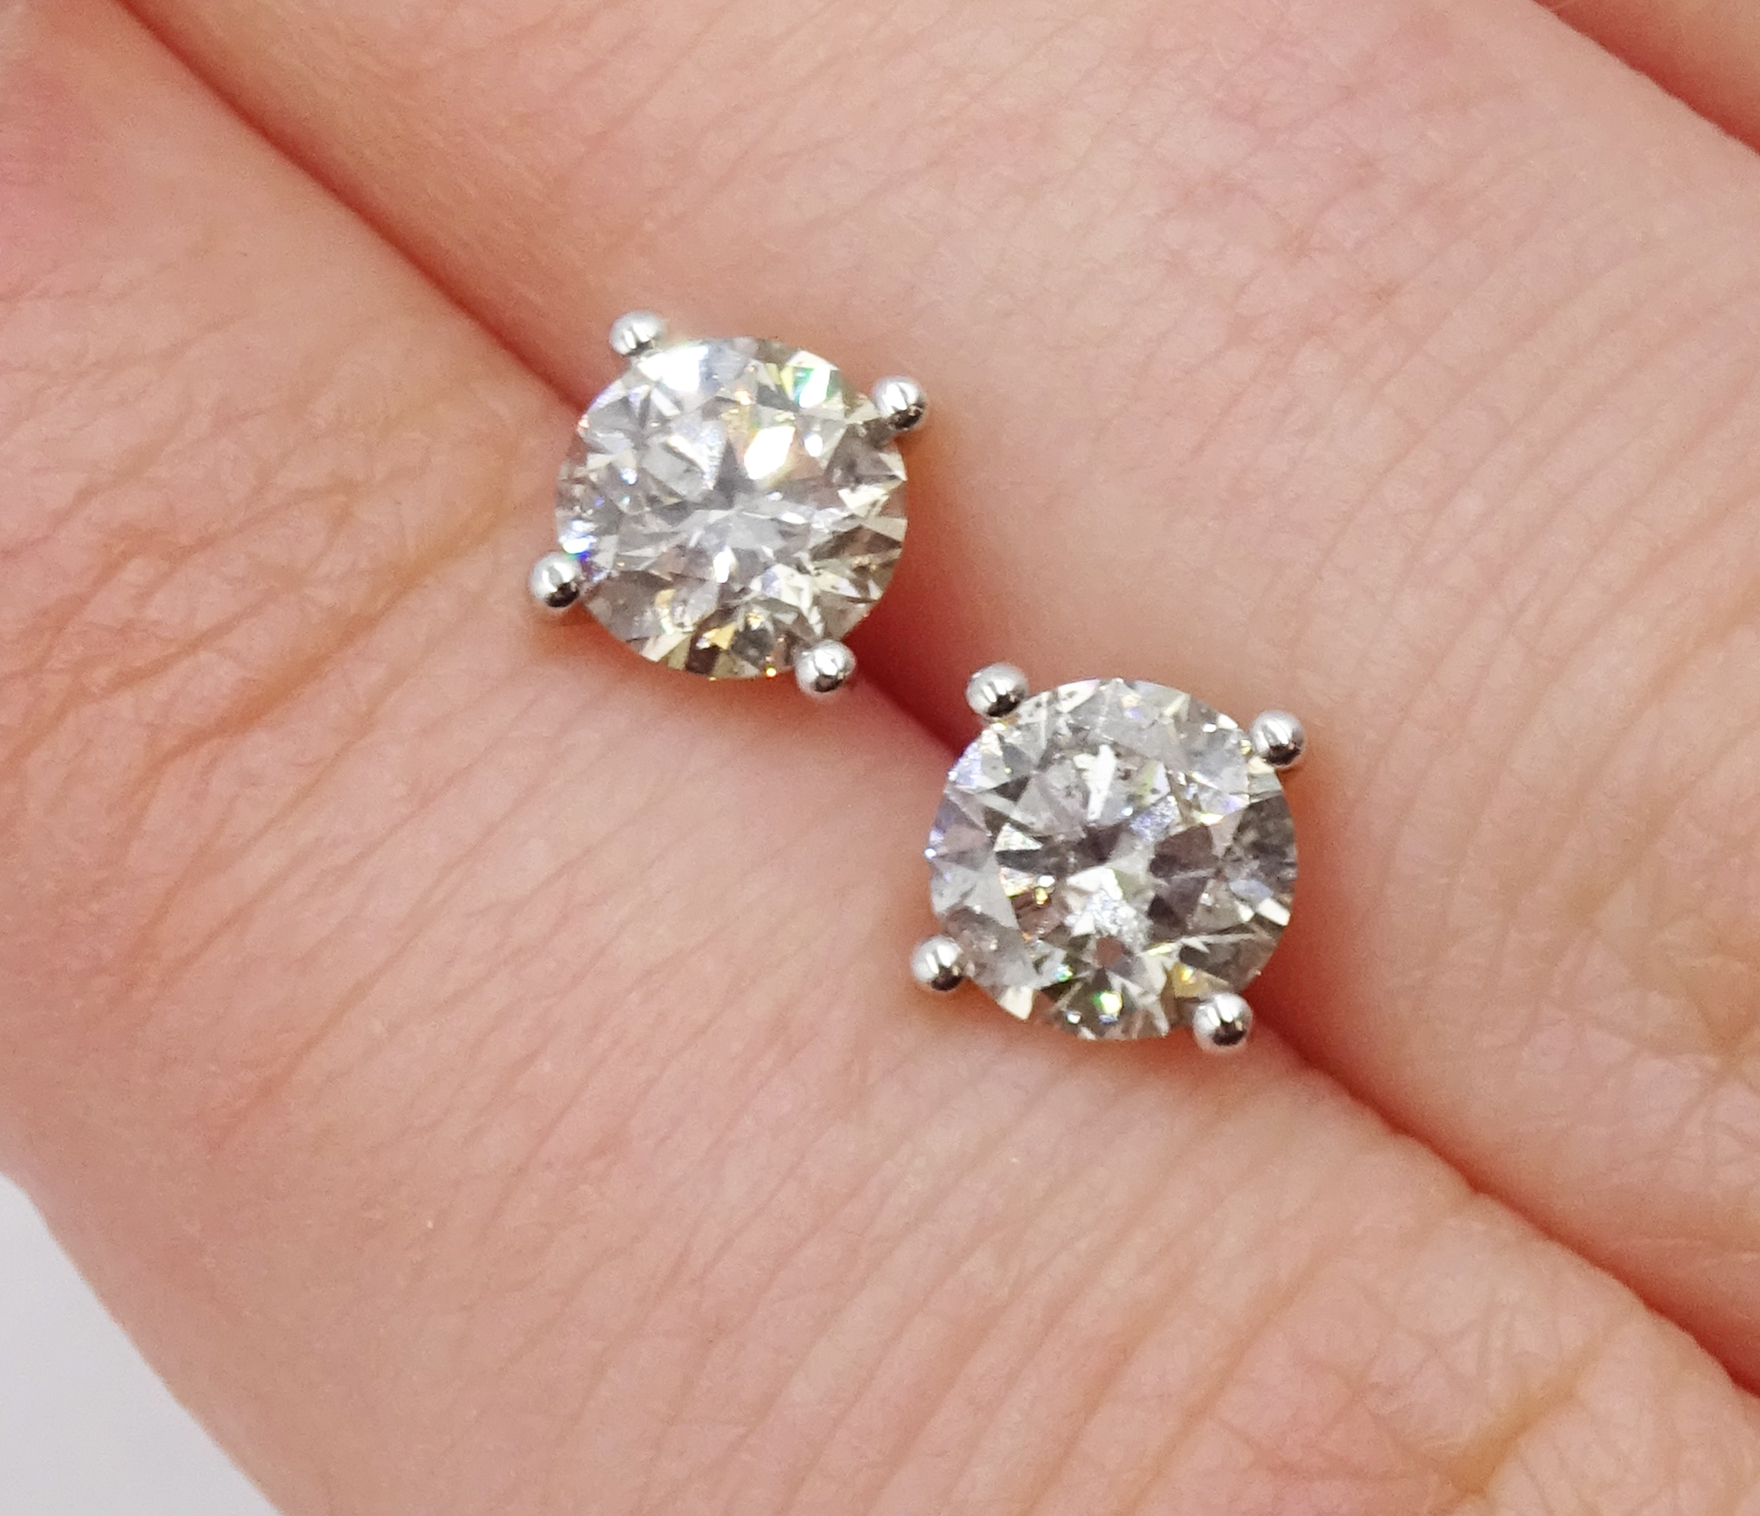 Pair of 18ct white gold brilliant cut diamond stud earrings - Image 3 of 3